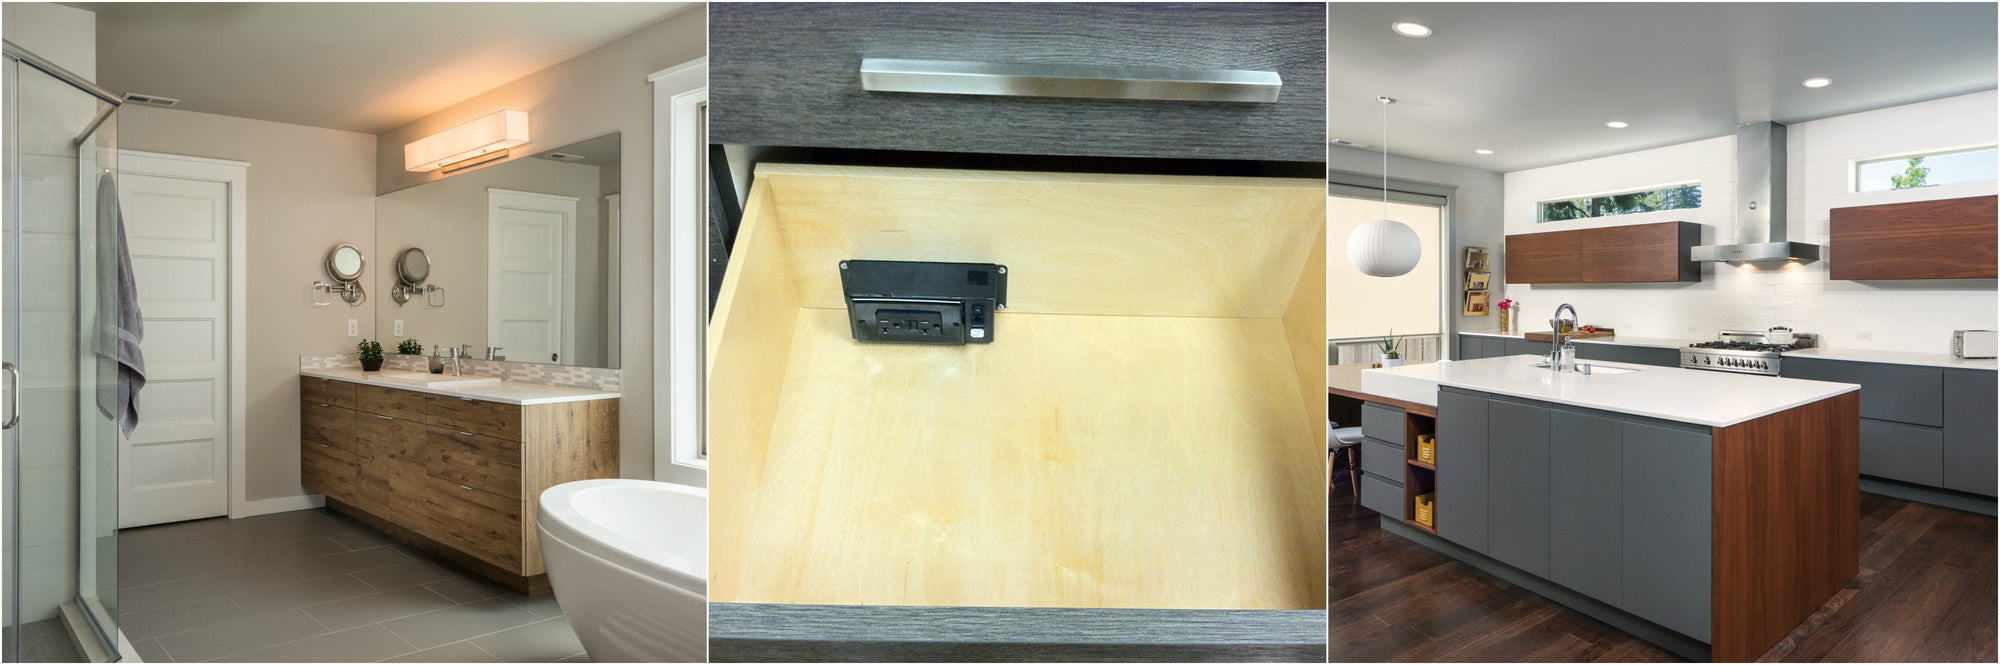 Cabinet Companies Now Offer Pre-Specified Docking Drawer Outlets